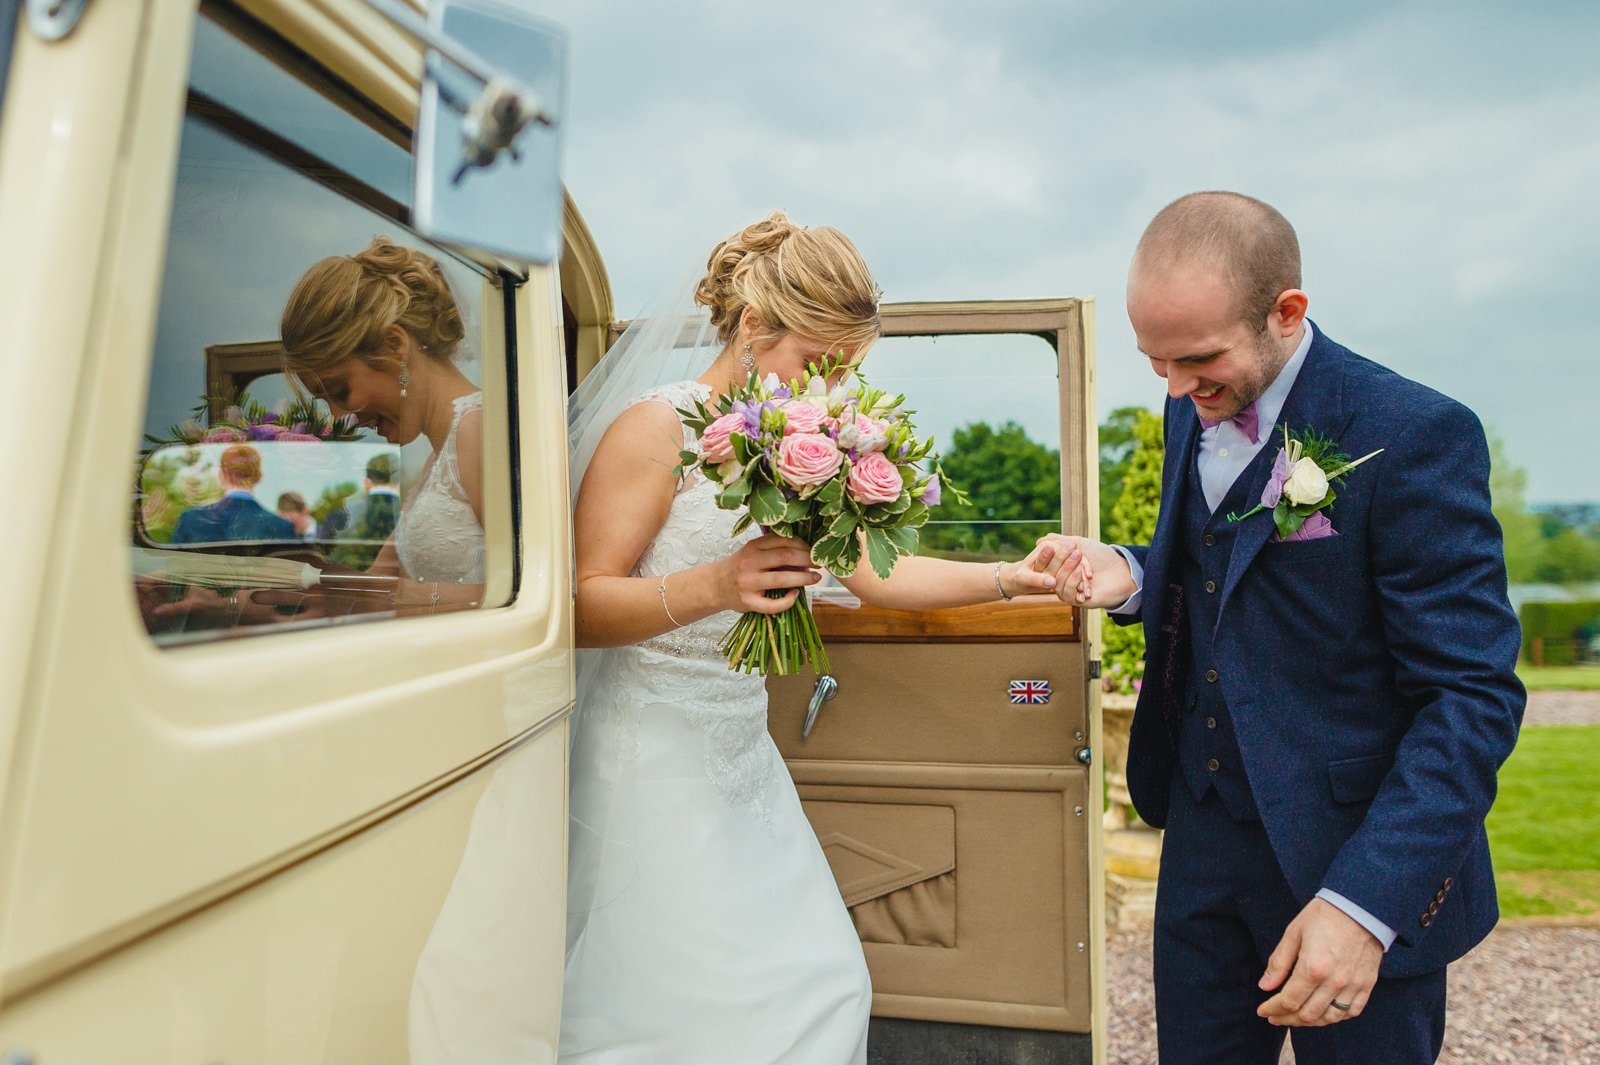 millers of netley wedding 45 - Millers Of Netley wedding, Dorrington, Shrewsbury | Emma + Ben